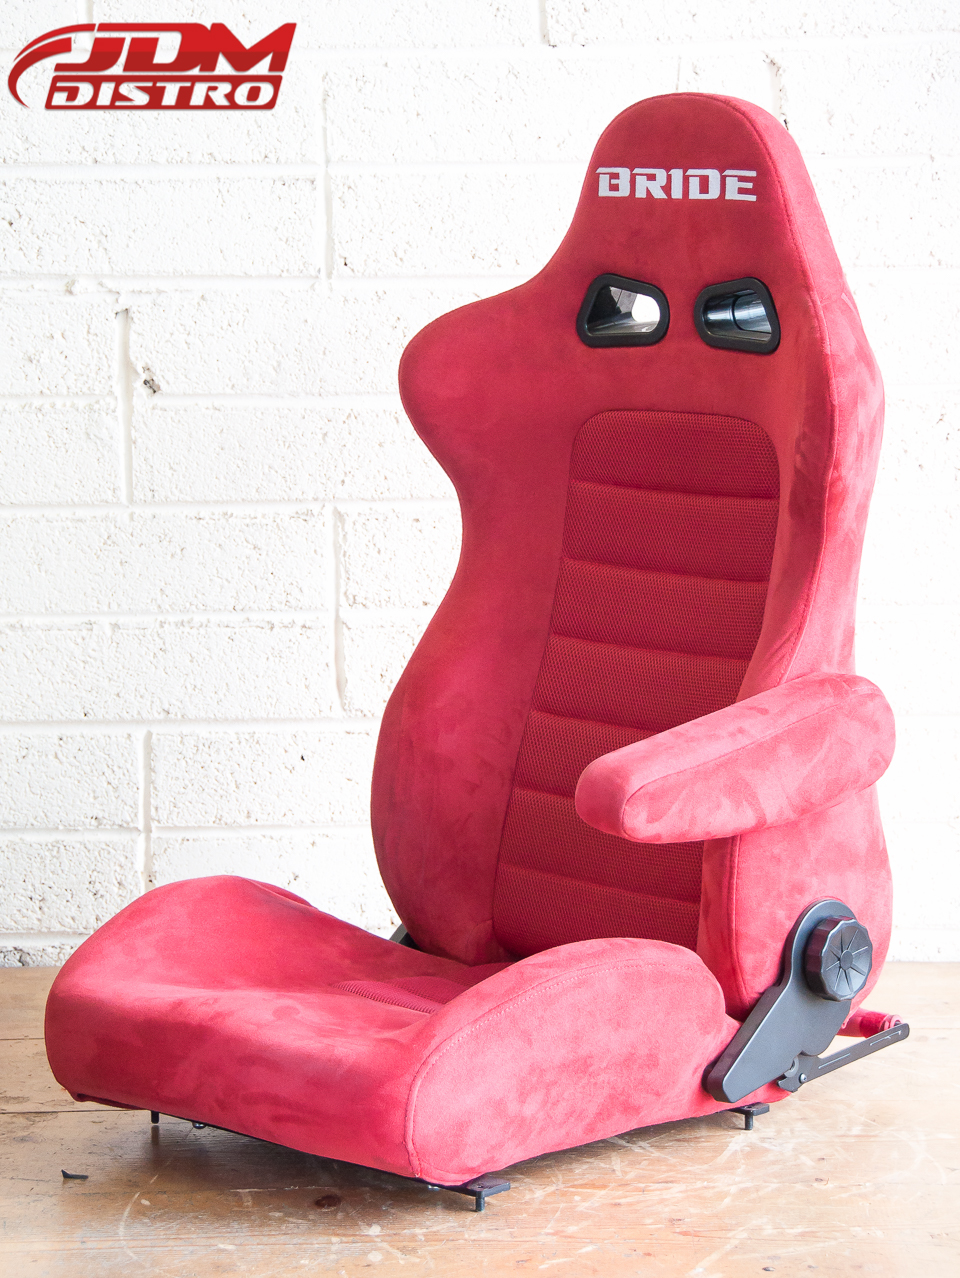 The evolution type of DIGO 【DIGO type R】was announced : bride reclining seats - islam-shia.org